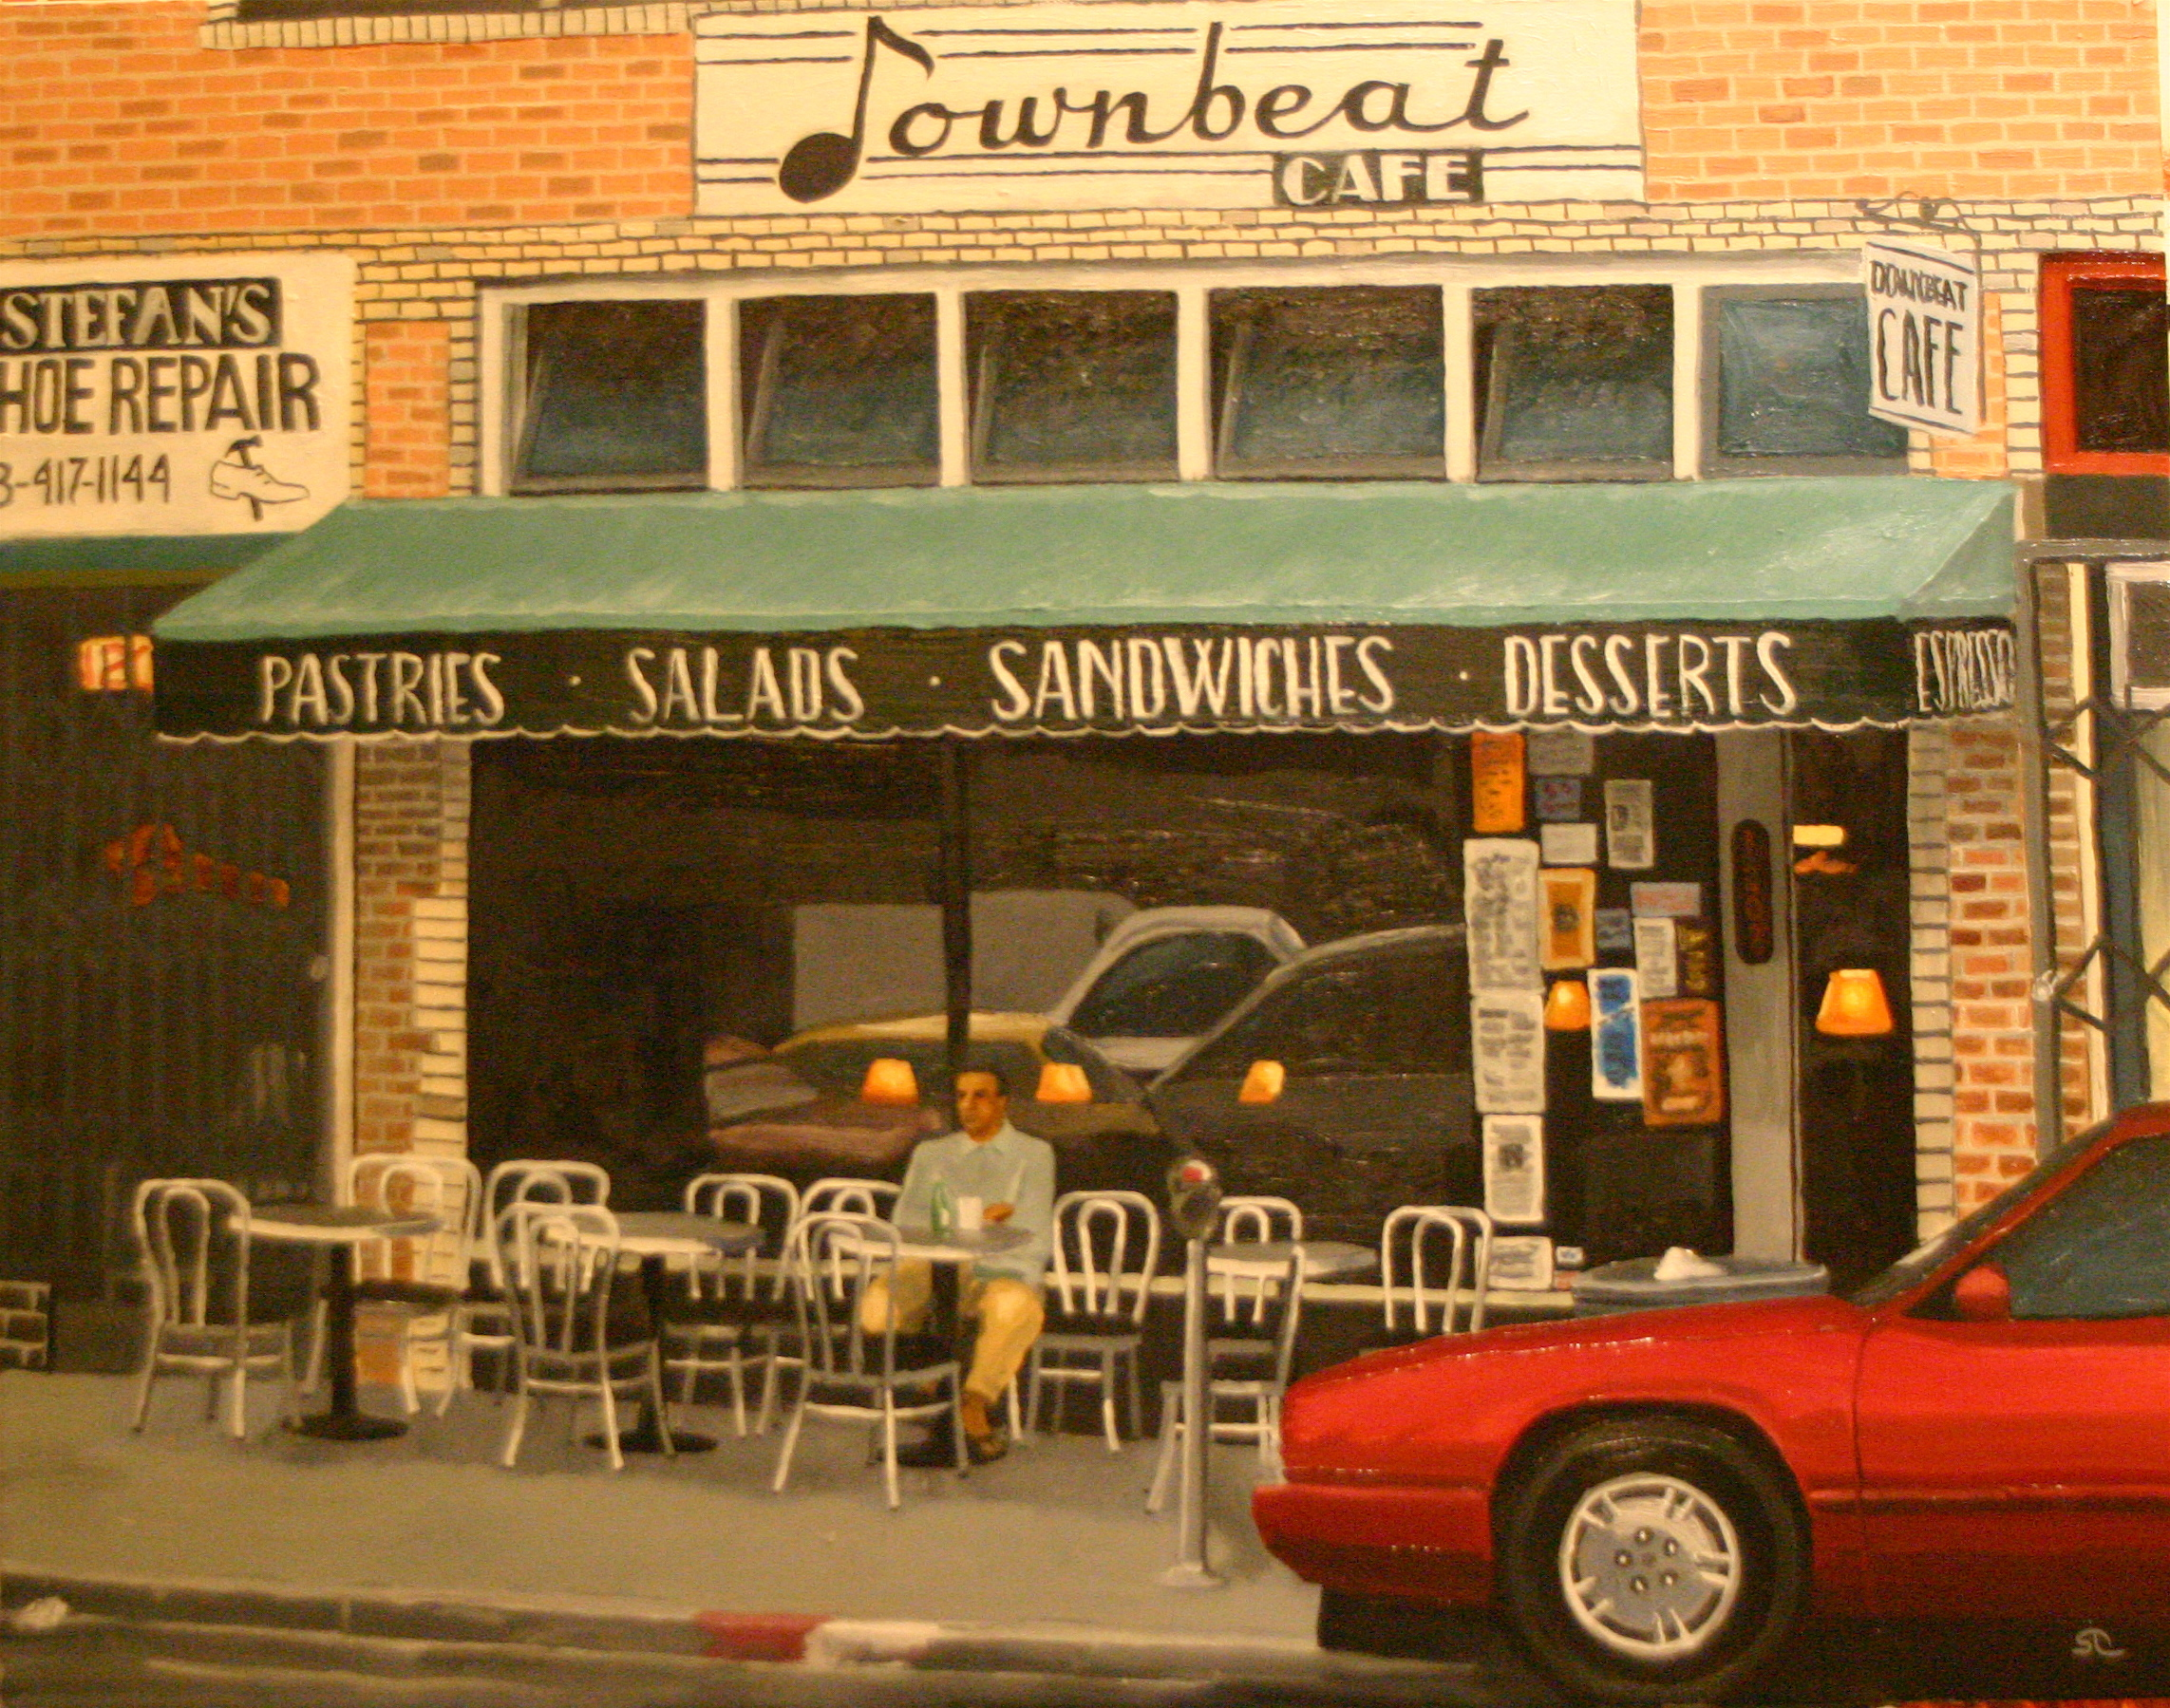 Downbeat Cafe oil on canvas 22 x 28